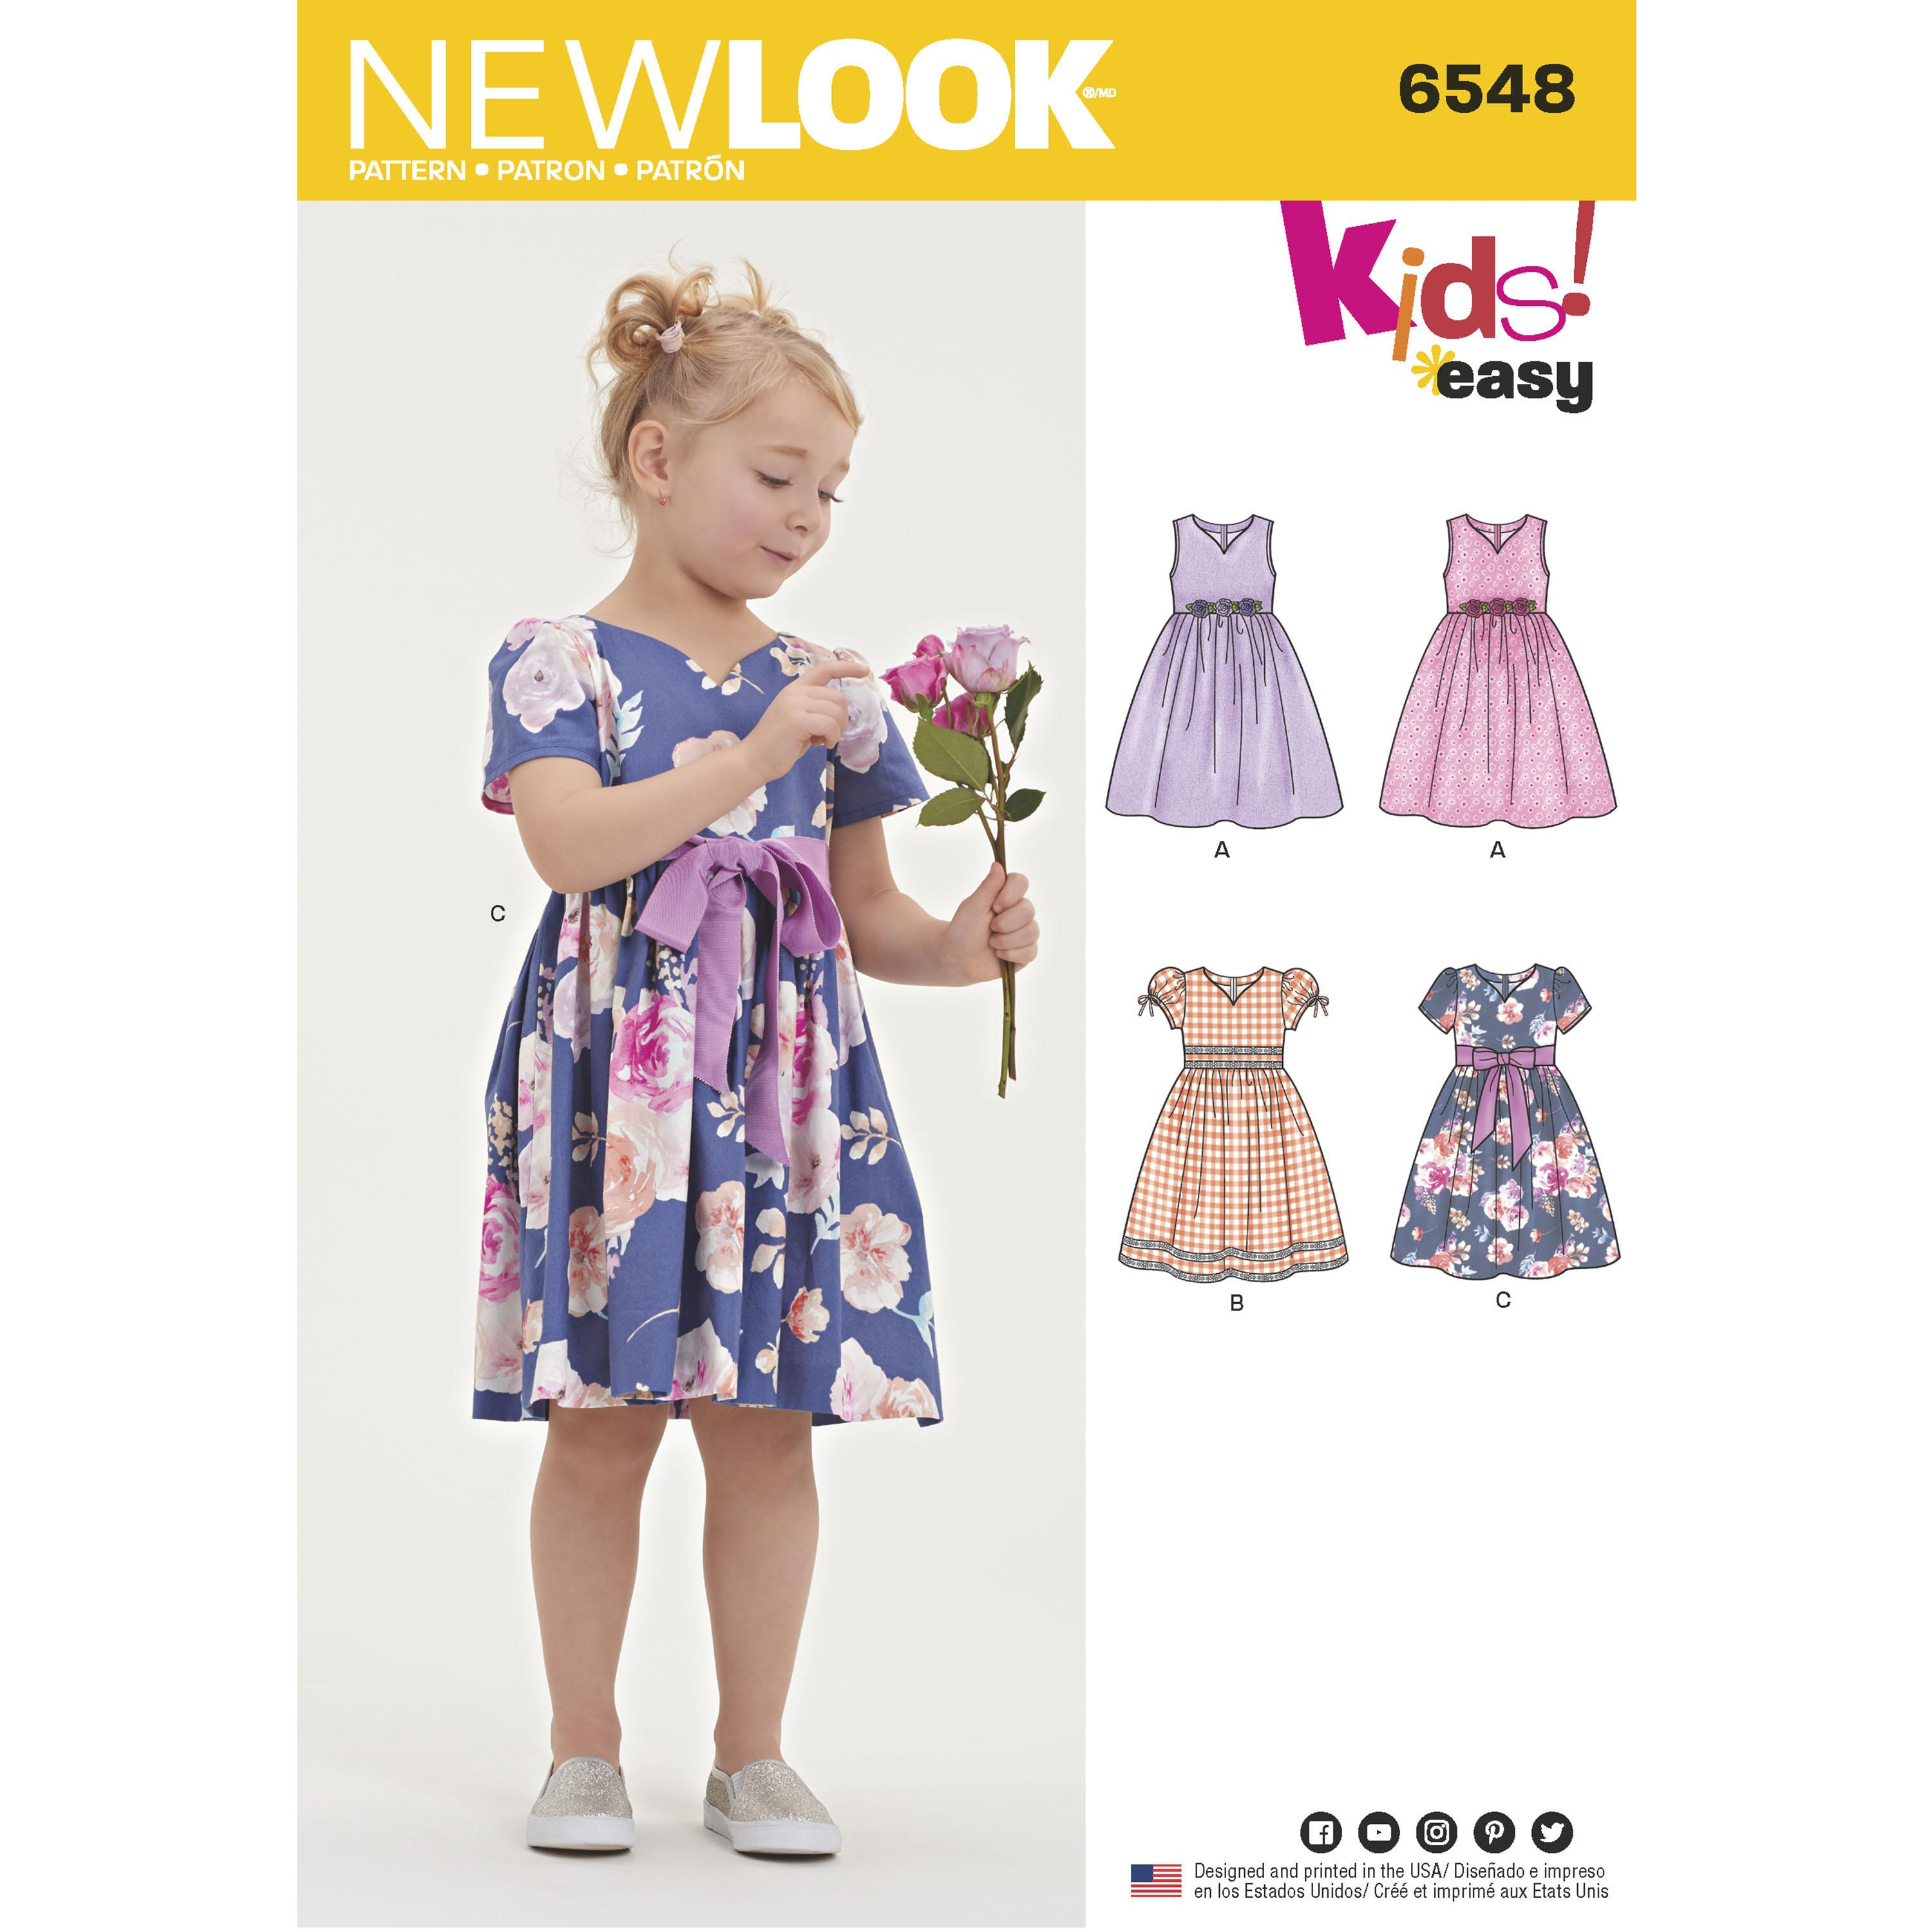 NewLook N6548 Child's Party Dress